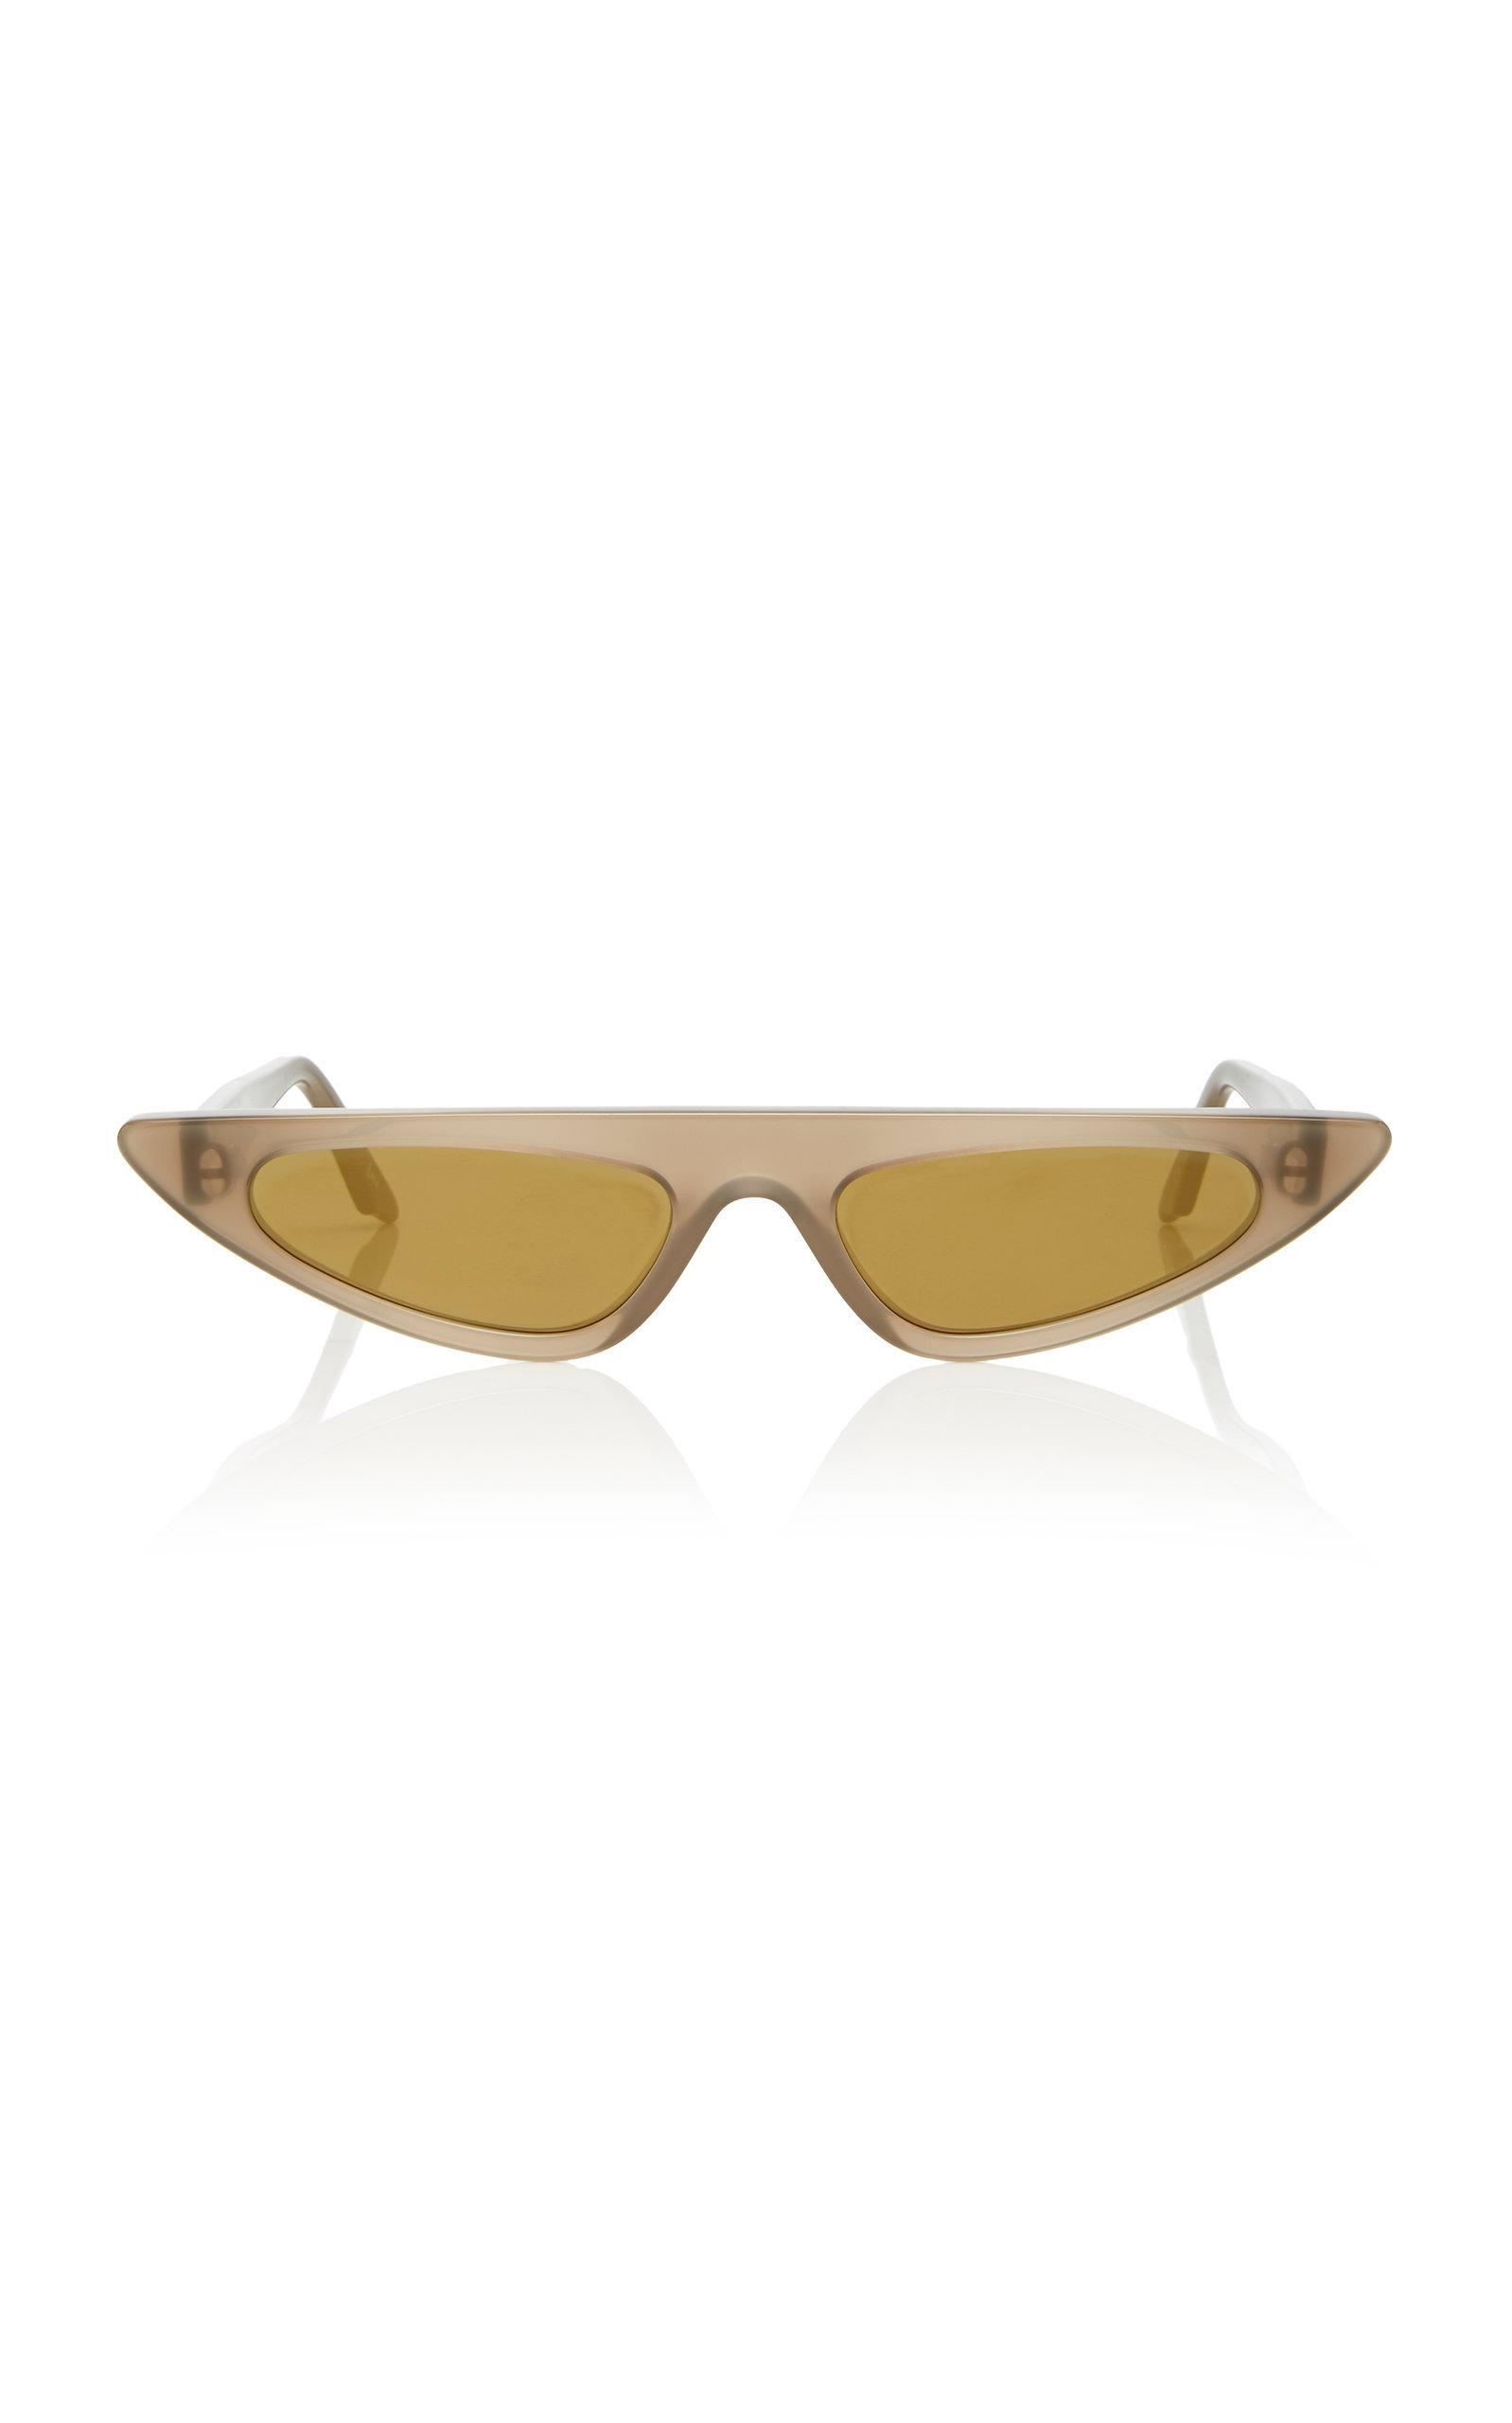 56e12c46af Andy Wolf sources all of their acetate from Italy to ensure both durability  and sustainability. This futuristic pair features an of-the-moment  exaggerated ...